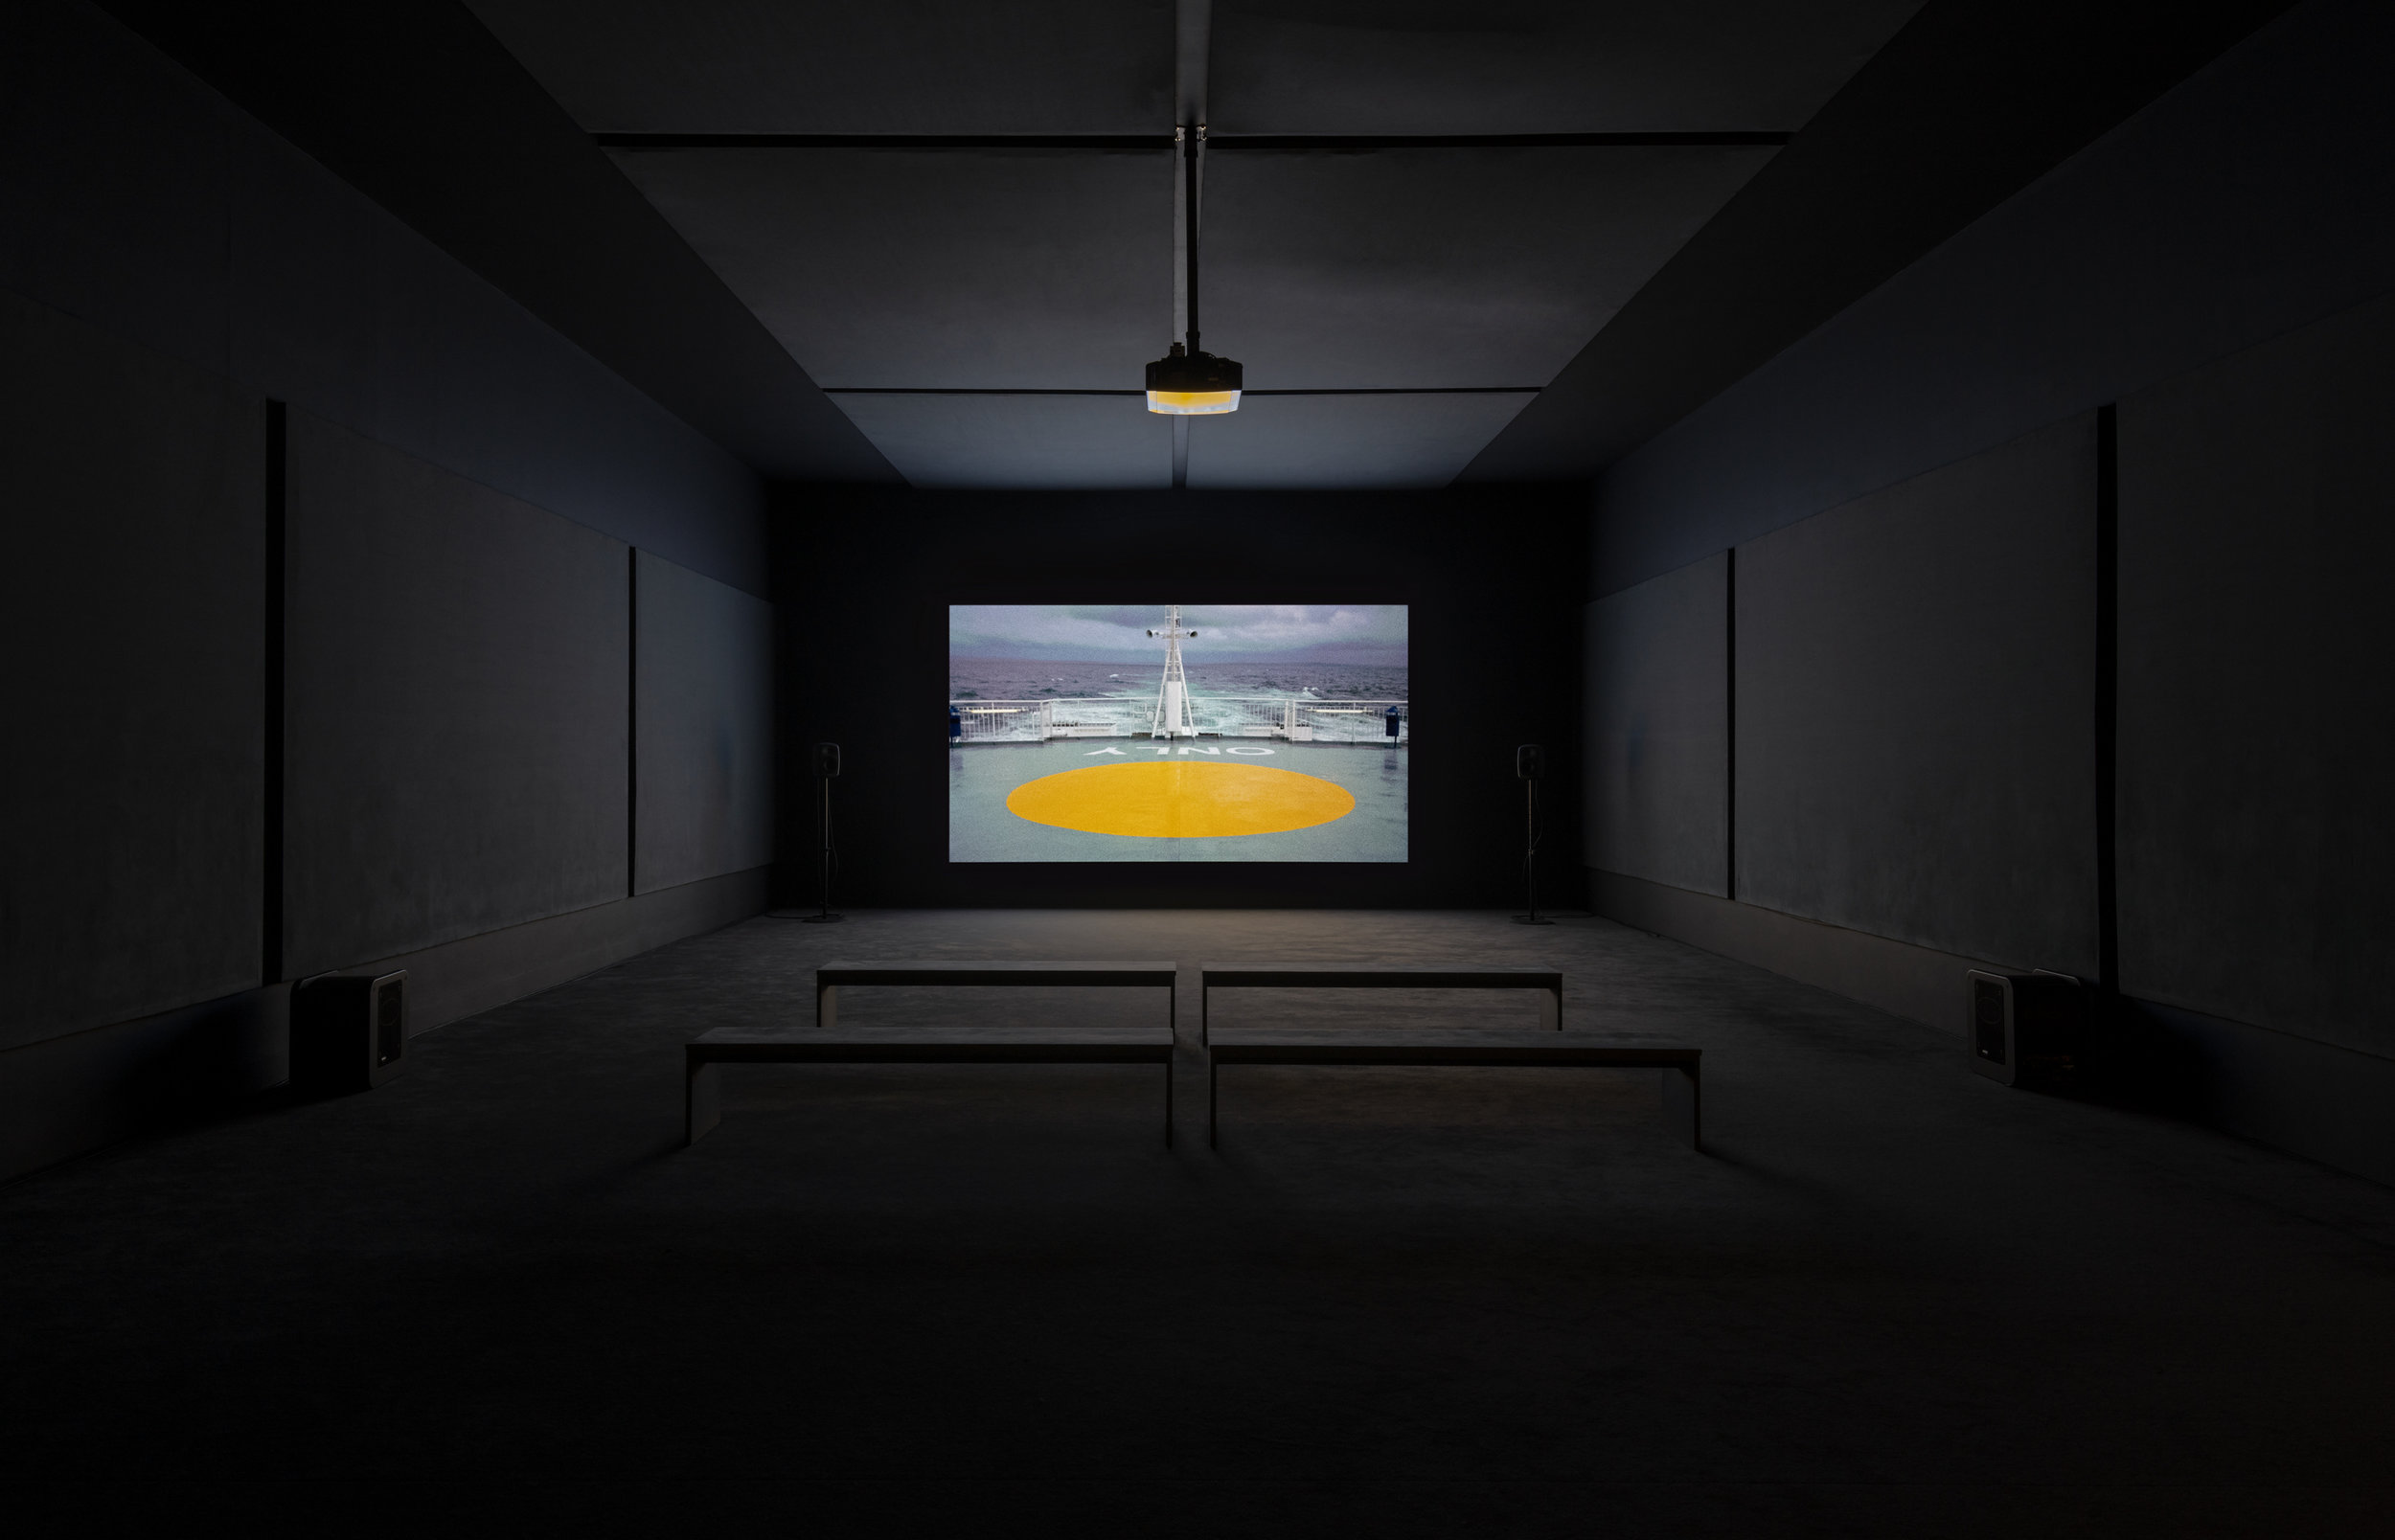 Charlotte Prodger, BRIOGIT20l 6, single-channel HD video. Turner Prize 2018 exhibition installation view, Tate Britain (26 September 2018 - 9 January 2019).